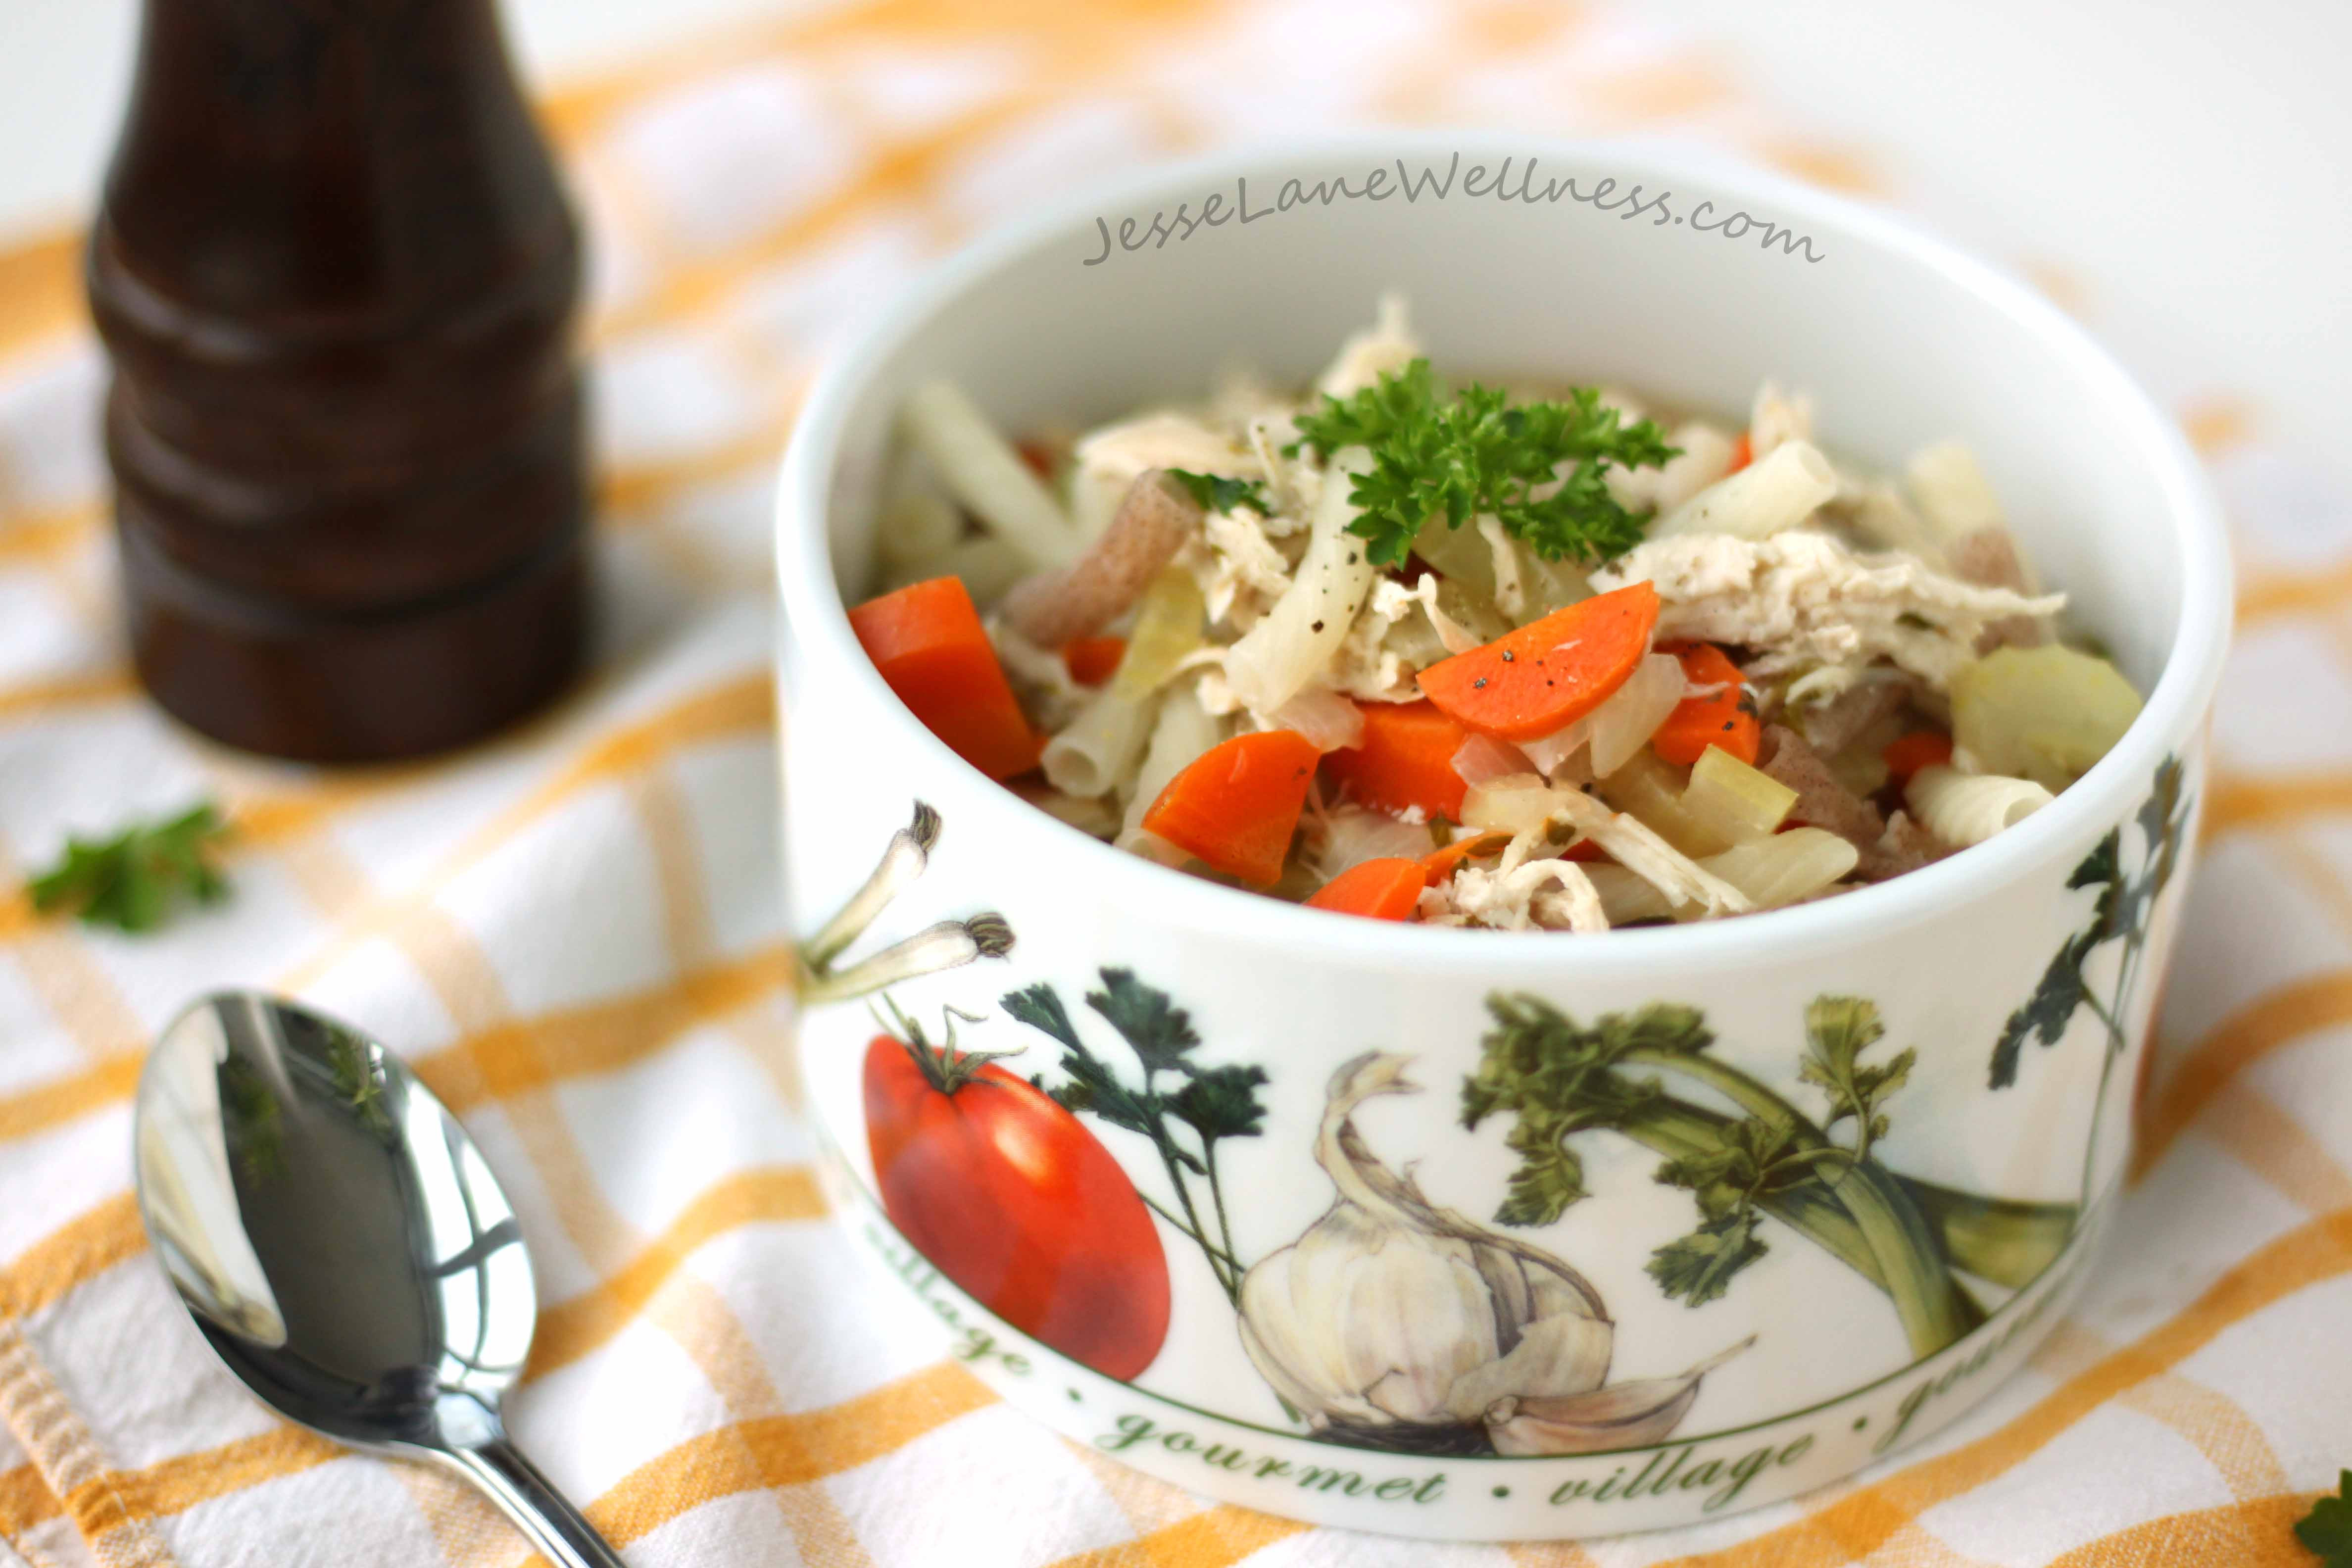 Is Chicken Noodle Soup Healthy  Healthy Chicken Noodle Soup Recipe by Jesse Lane Wellness